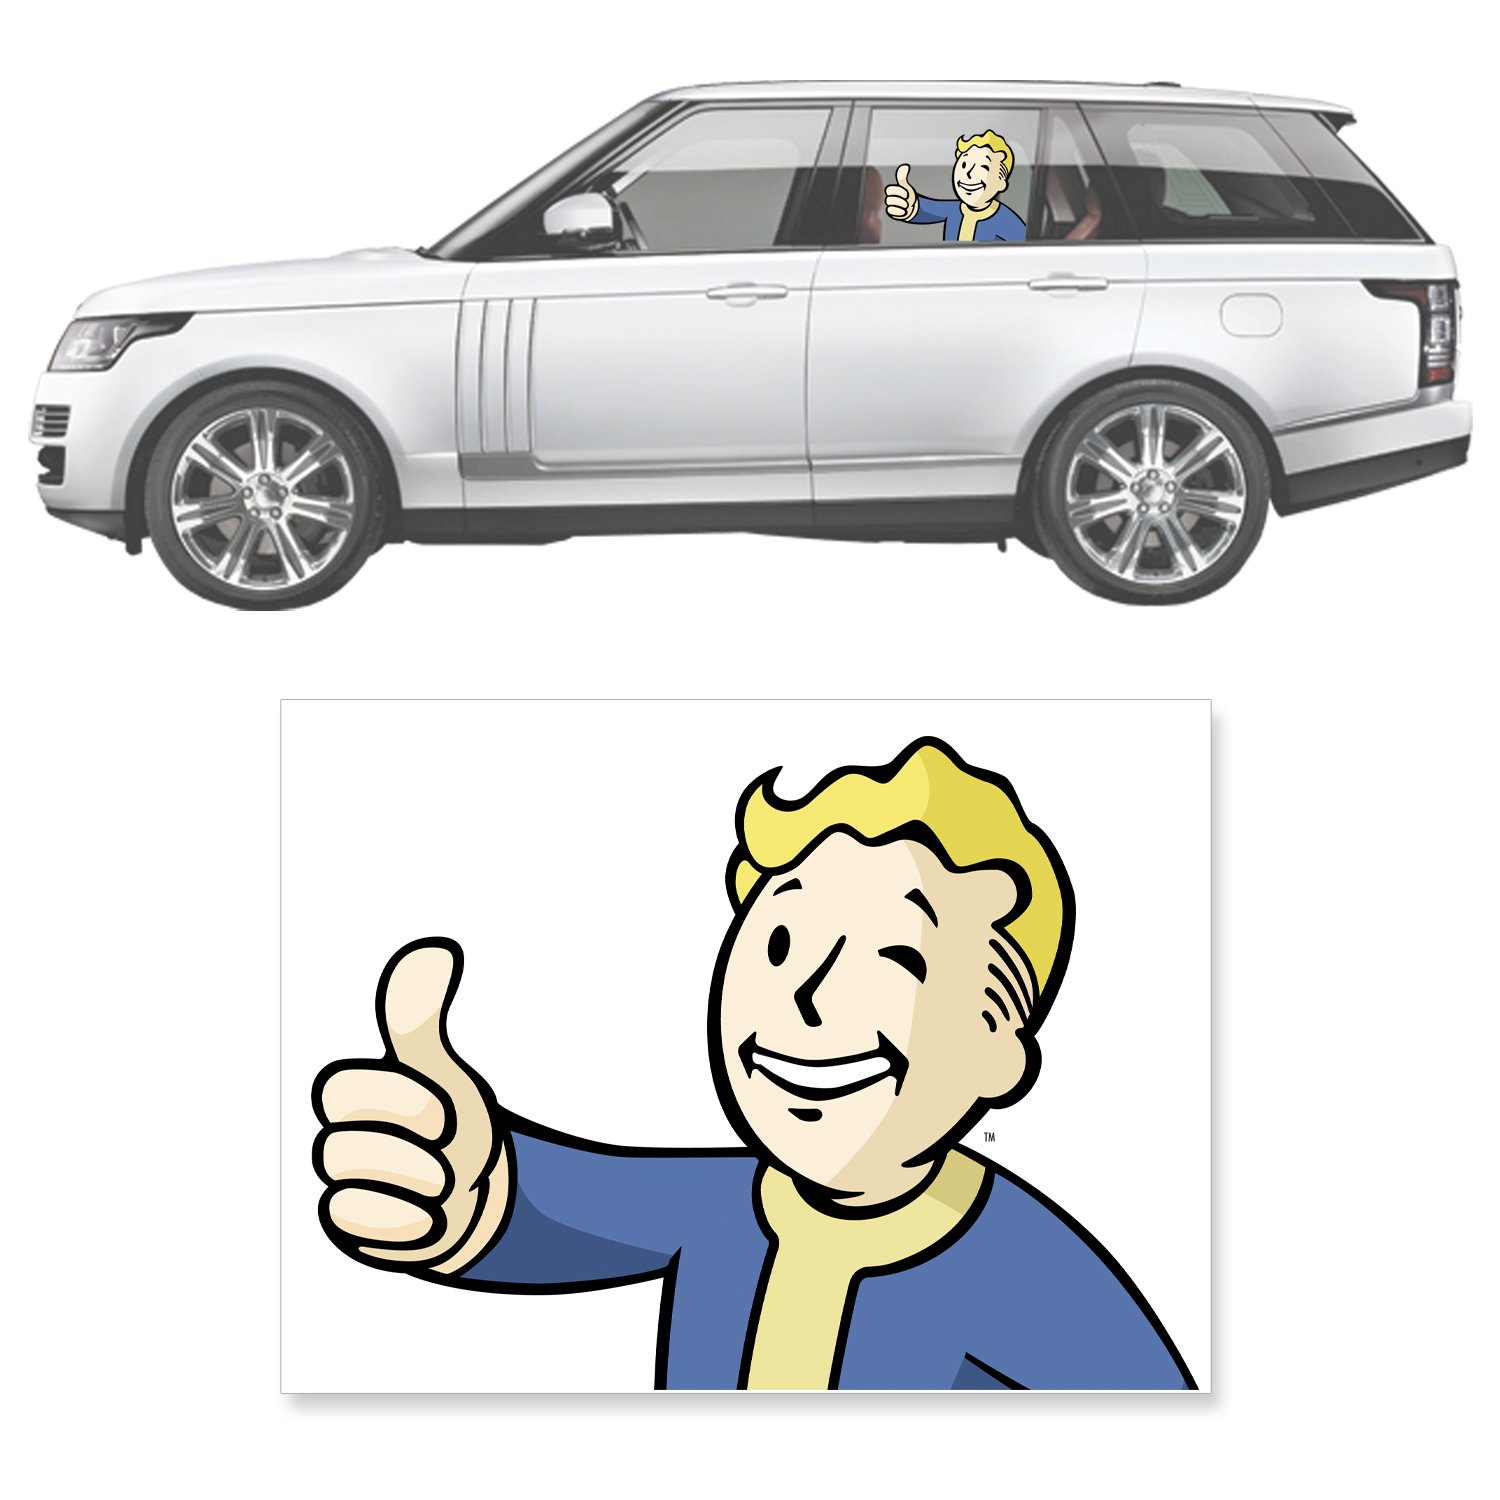 FWFO 3004 Car Accessories Fallout 4 Vault Boy Passenger Series Perforated Sunshade Graphic Decal FanWraps Inc